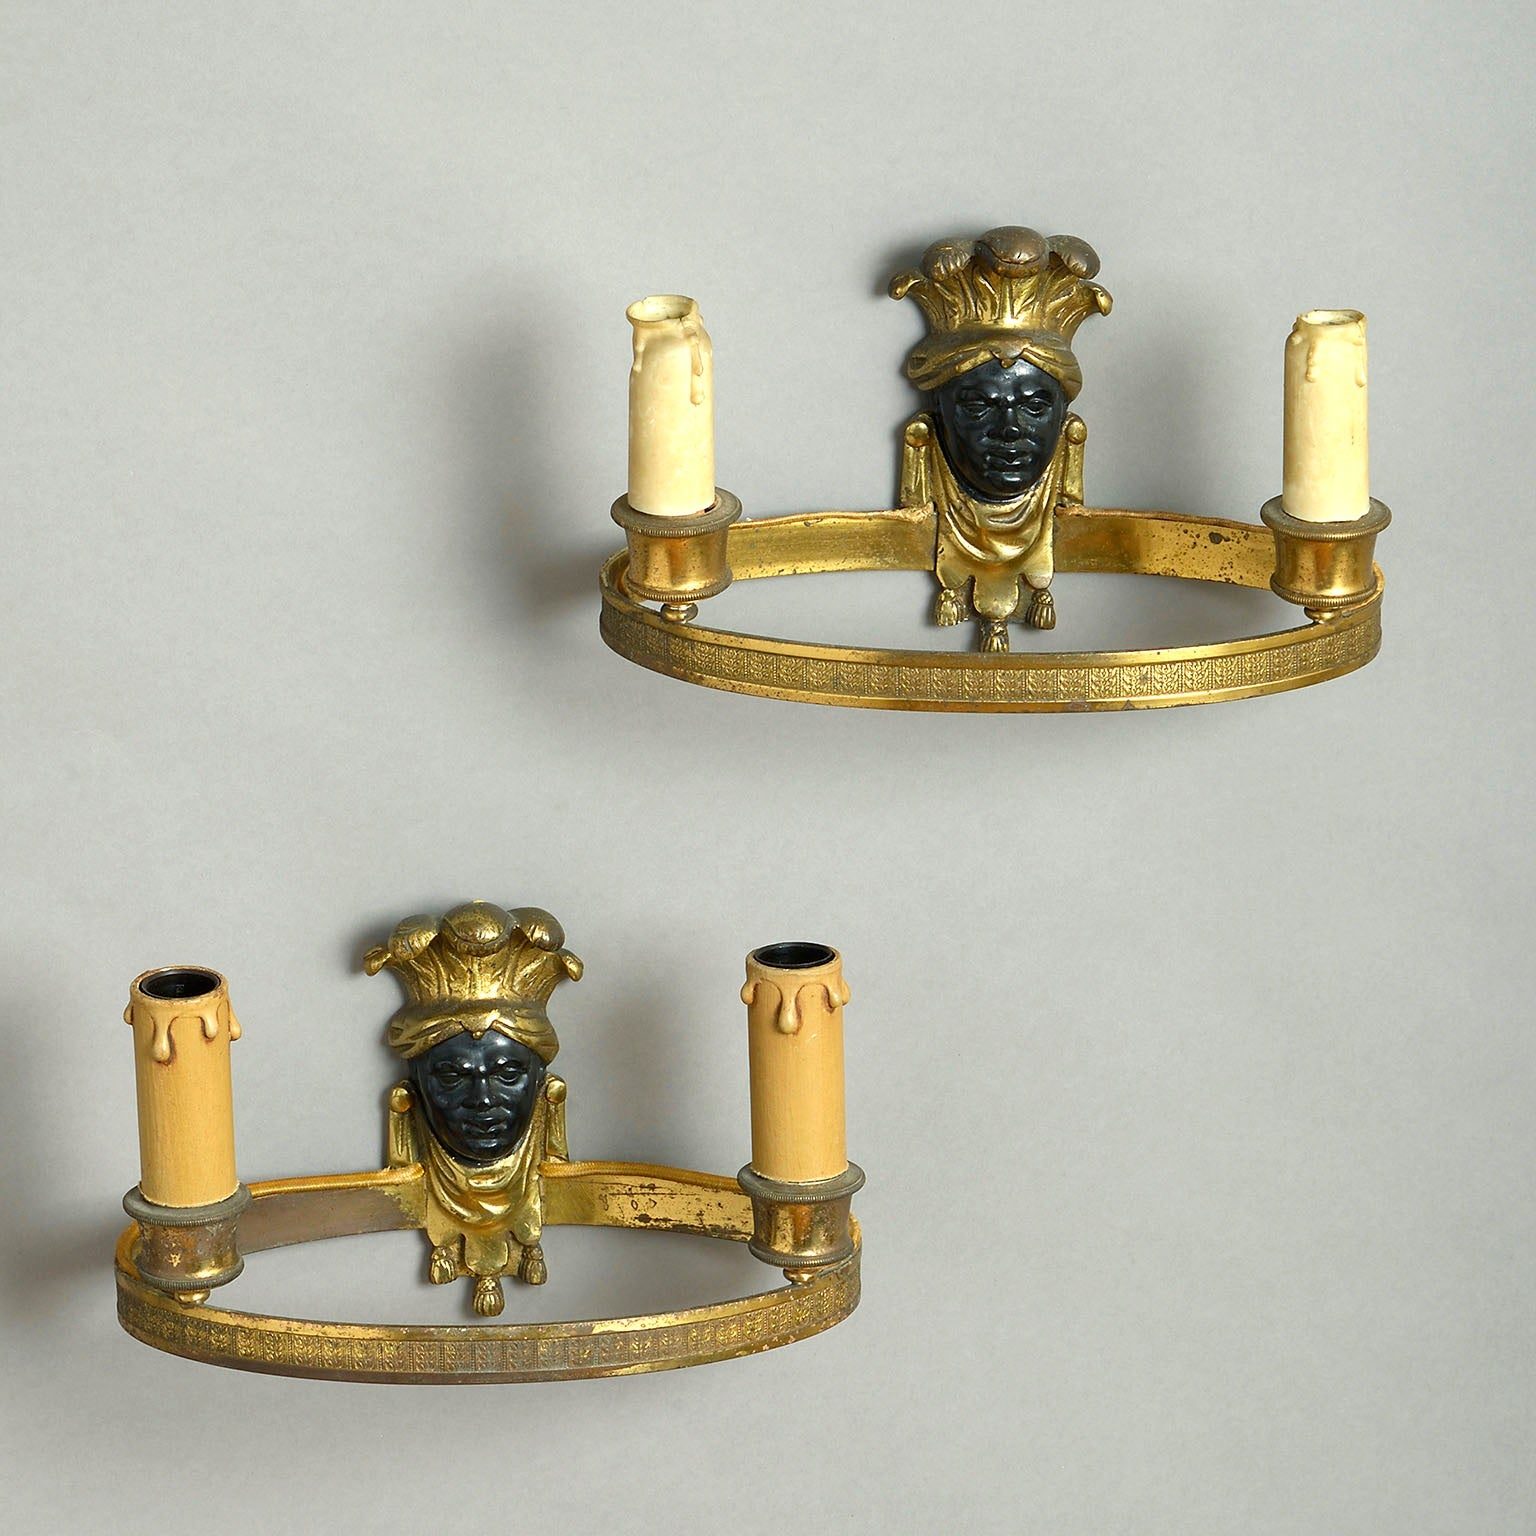 Pair of Empire Gilt-Bronze Wall Sconces with Bronzed Masks